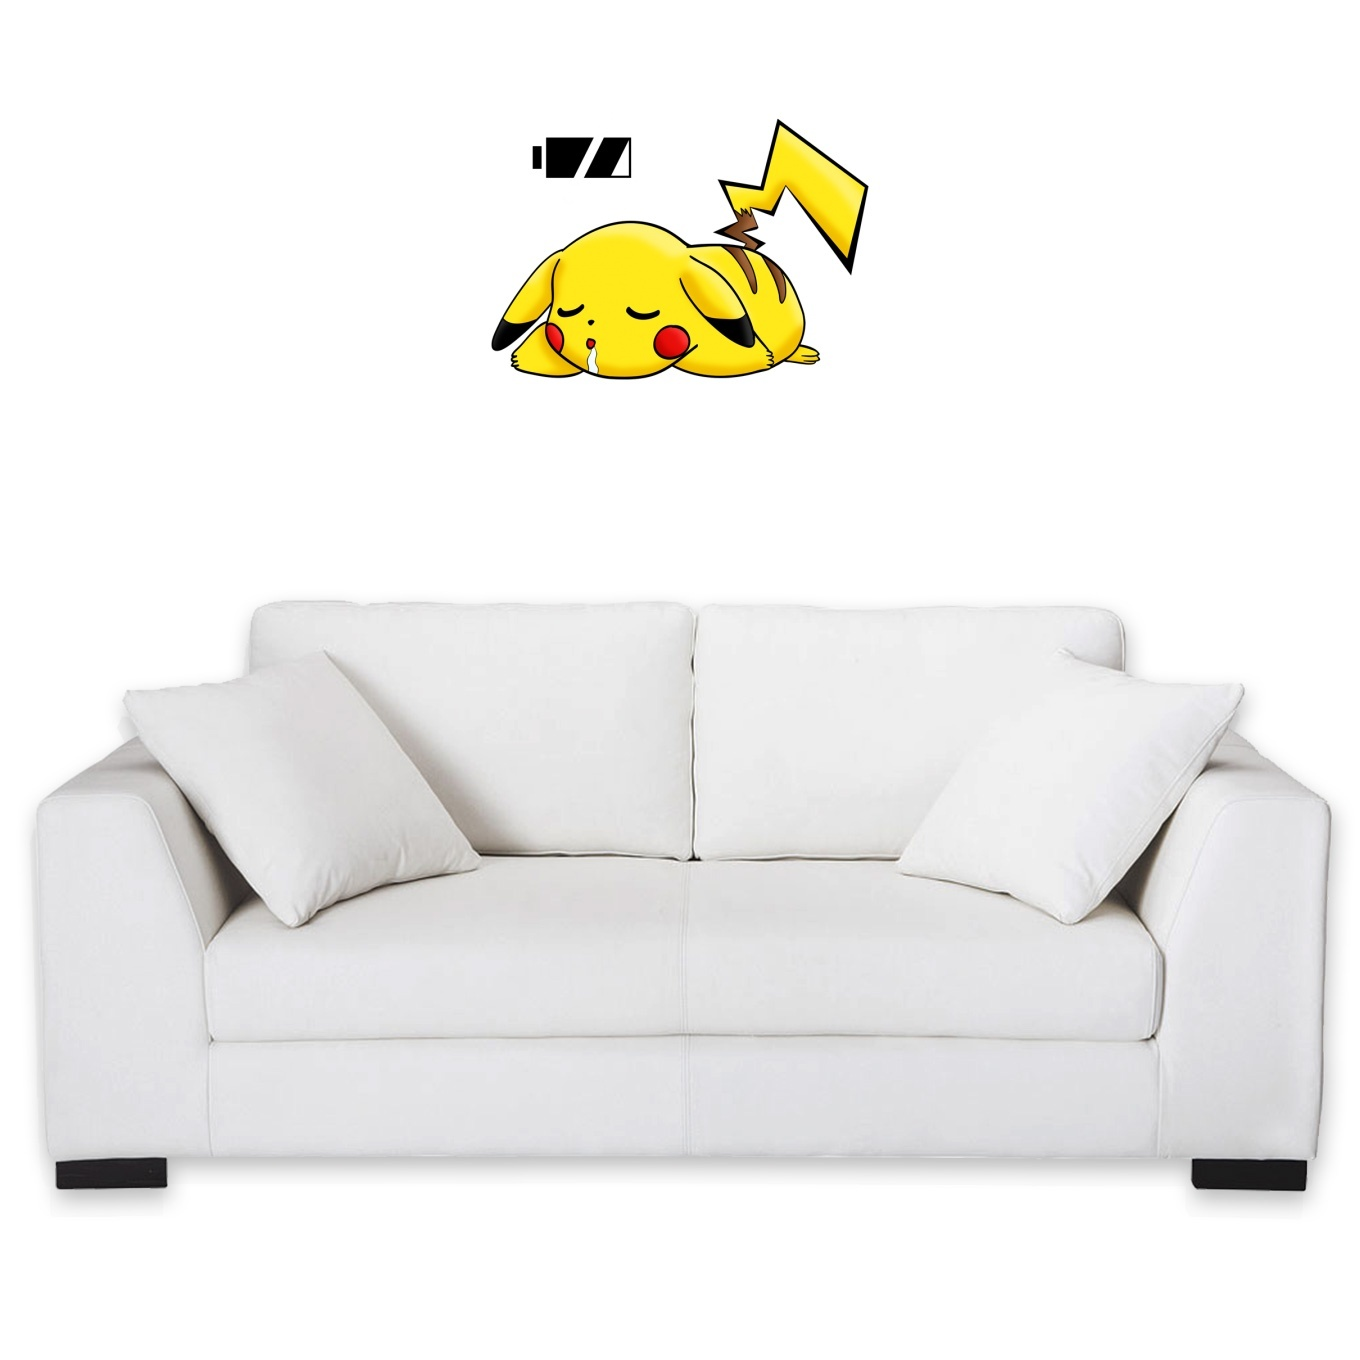 Wall Stickers Video Games Parodies